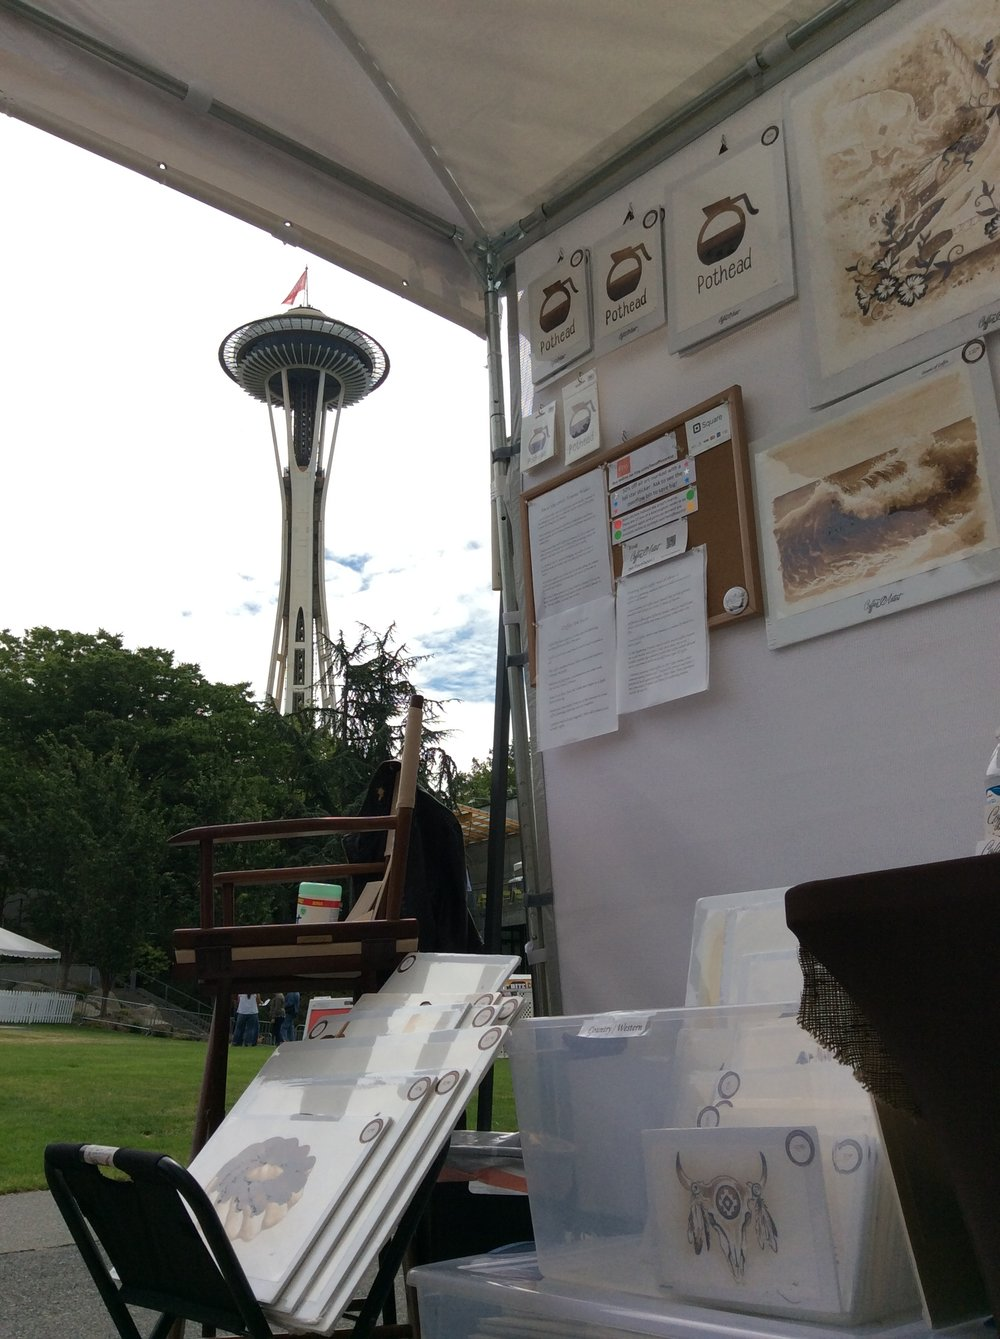 I'm right by the Space Needle at the 2018 Bite of Seattle